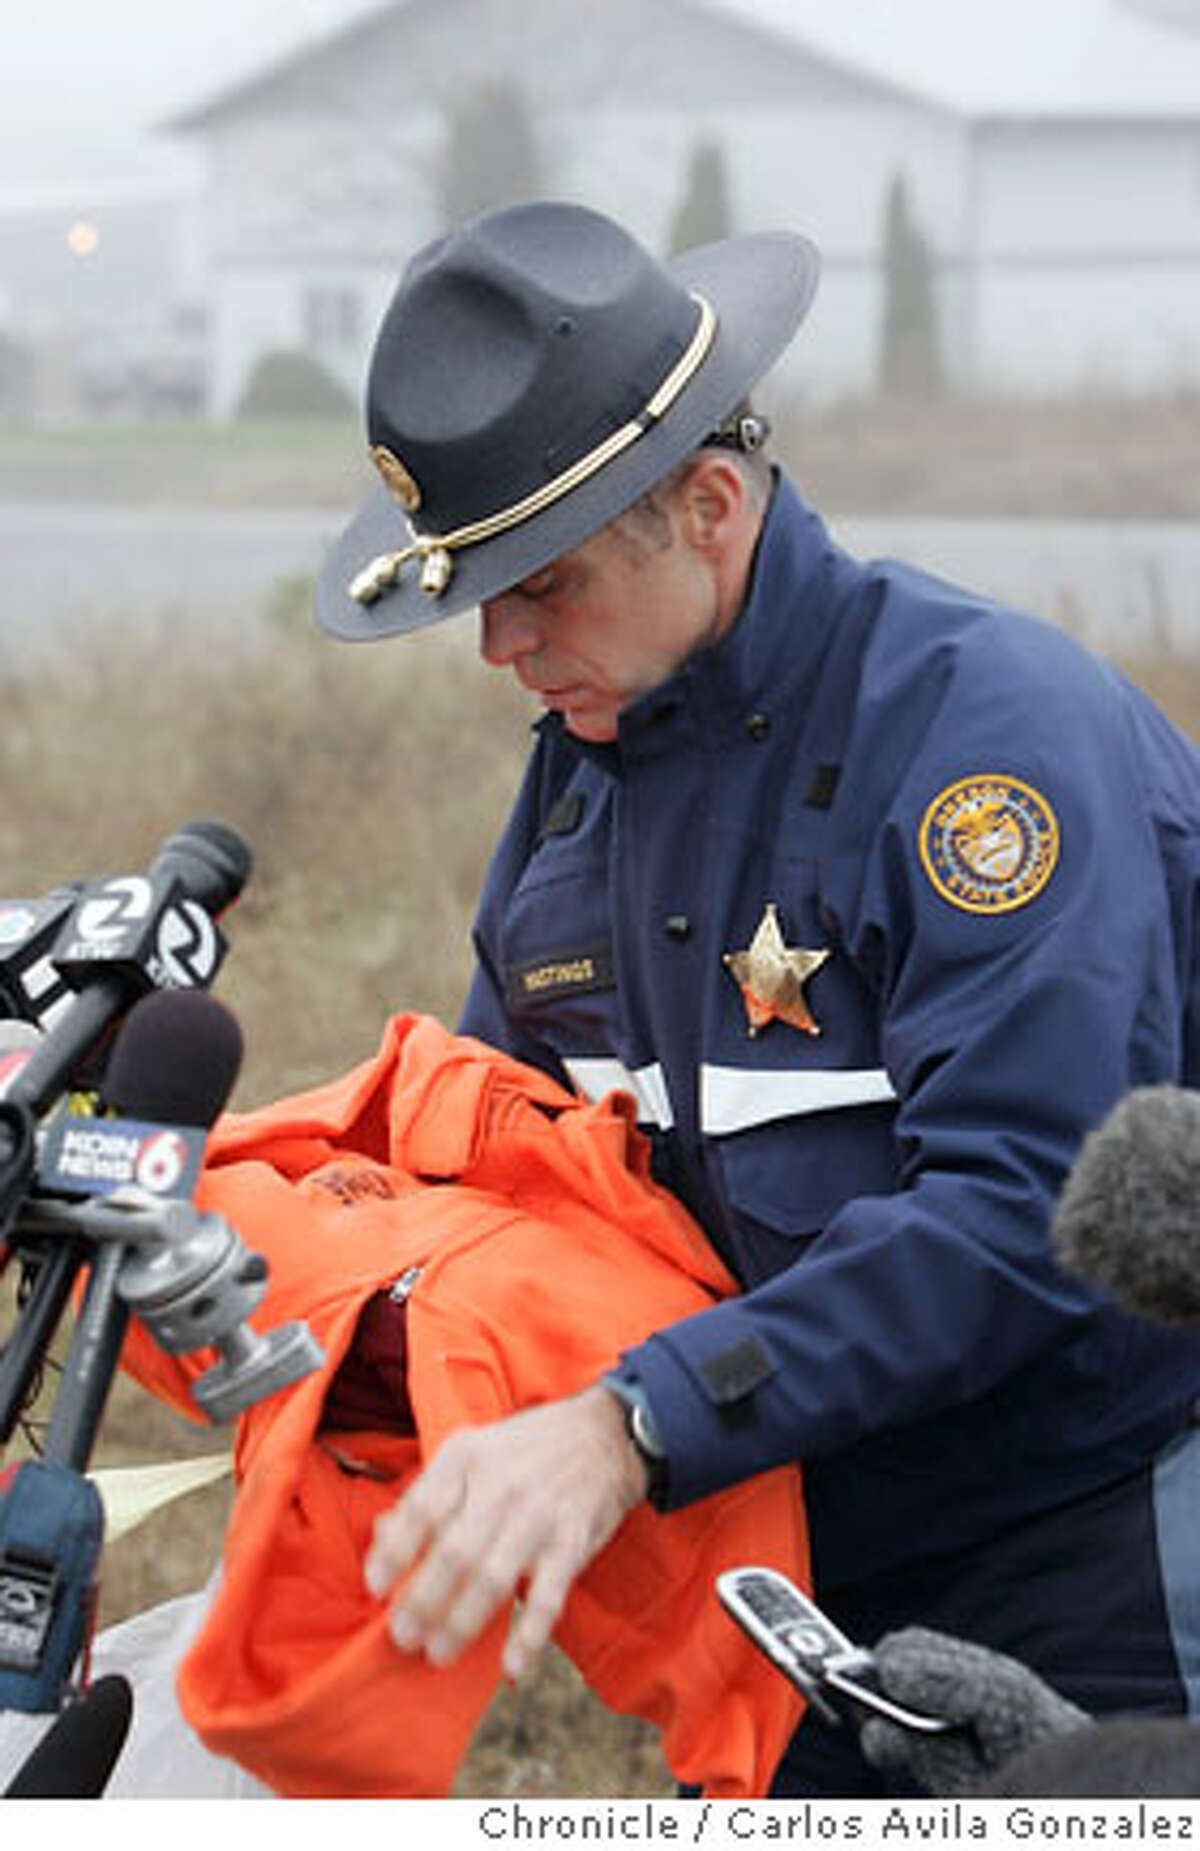 Oregon State Police Lt. Gregg Hastings shows some of the items that will be dropped as care packages for James Kim as part of the search and rescue as the hunt for James Kim continues on Wednesday, December 6, 2006. The package includes bright orange sweatshirt and pants, flares, MRE (meal-ready-to-eat), blanket, water-proof bib overalls, and personal letters from his family. Local and state authorities and search and rescue personnel continued their search for James Kim on Wednesday, December 6, 2006. The San Francisco man whose family was rescued Monday after they were lost in the mountains outside of Merlin, Or., set out on foot to try to find help, but has not been located. Photo by Carlos Avila Gonzalez/The San Francisco Chronicle Photo taken on 12/6/06, in Merlin, Or, USA. **All names cq (source)